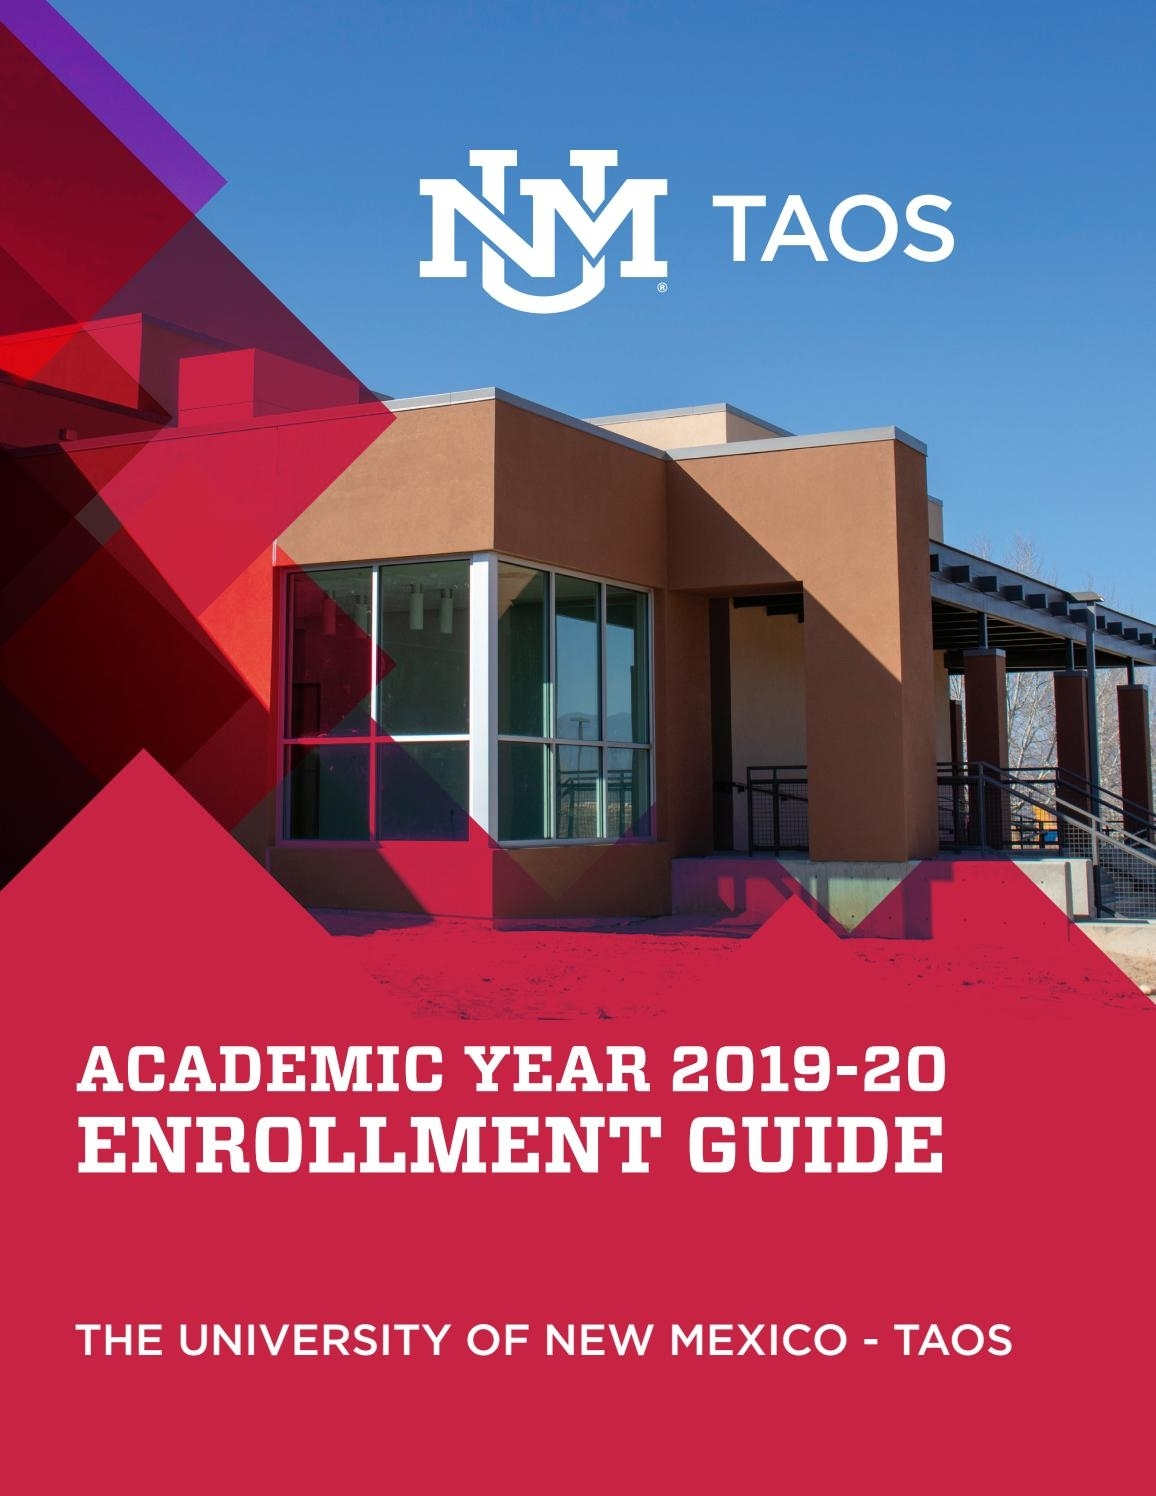 Unm-Taos Enrollment Guide: Academic Year 2019-20Unm Taos - Issuu within 2019 2020 Calendar Unm